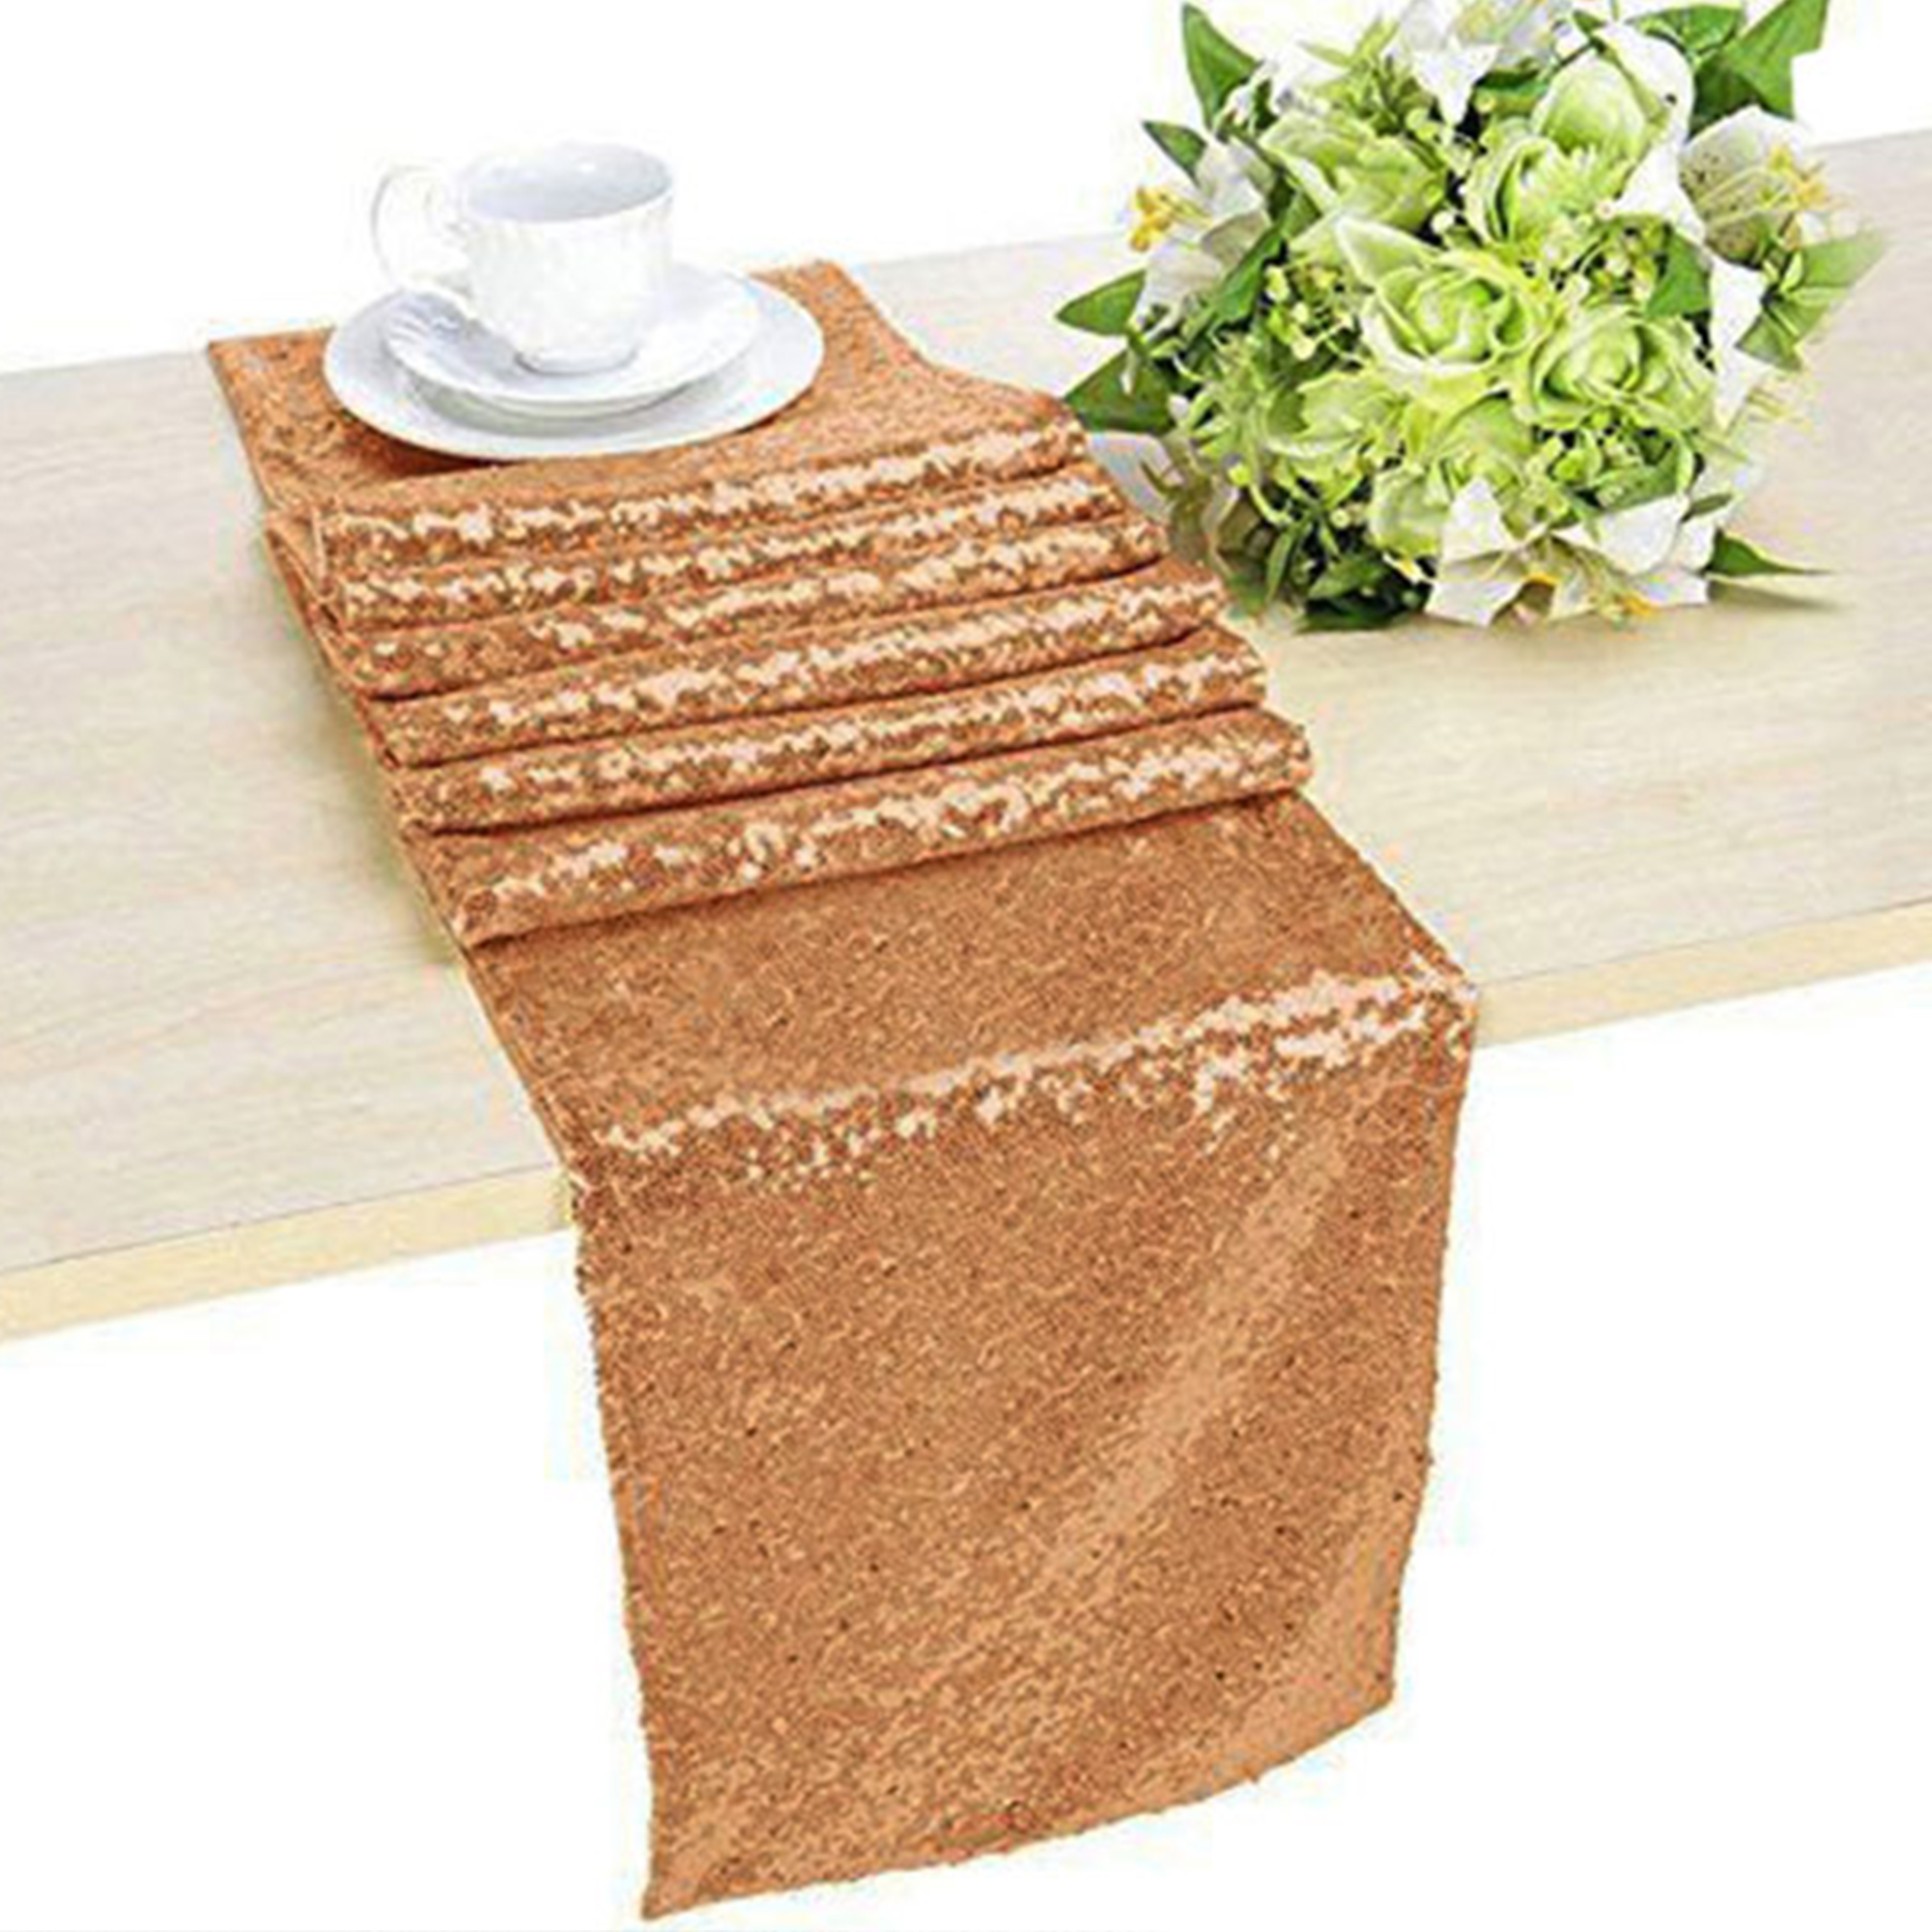 Sequin-Table-Runner-Tablecloth-Xmas-Party-Wedding-Decorations-12-034-x72-039-039-108-034-118-034 thumbnail 10